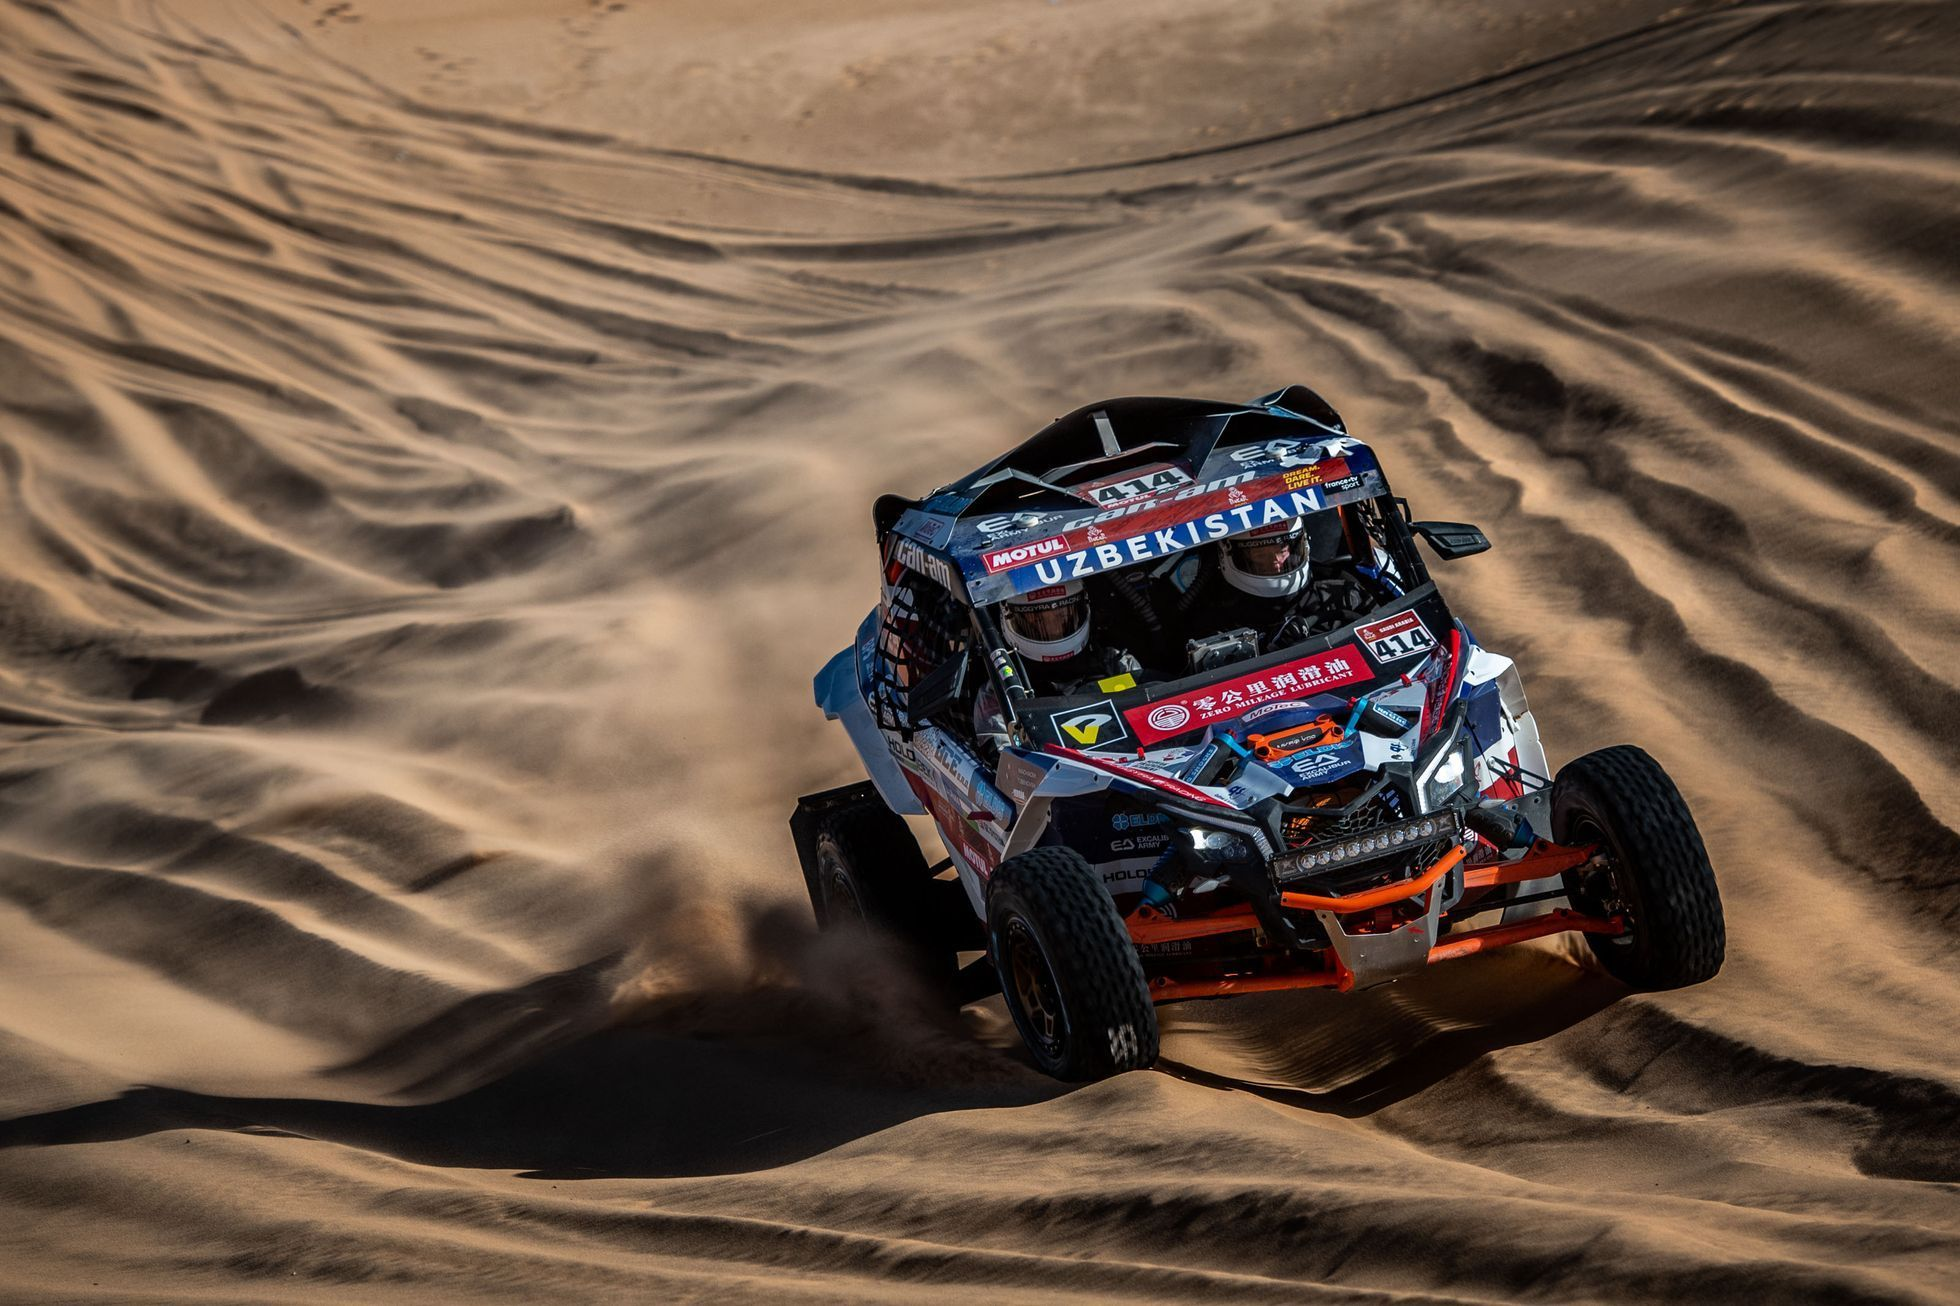 Rallye Dakar 2020, 8. etapa: Josef Macháček, Can-Am